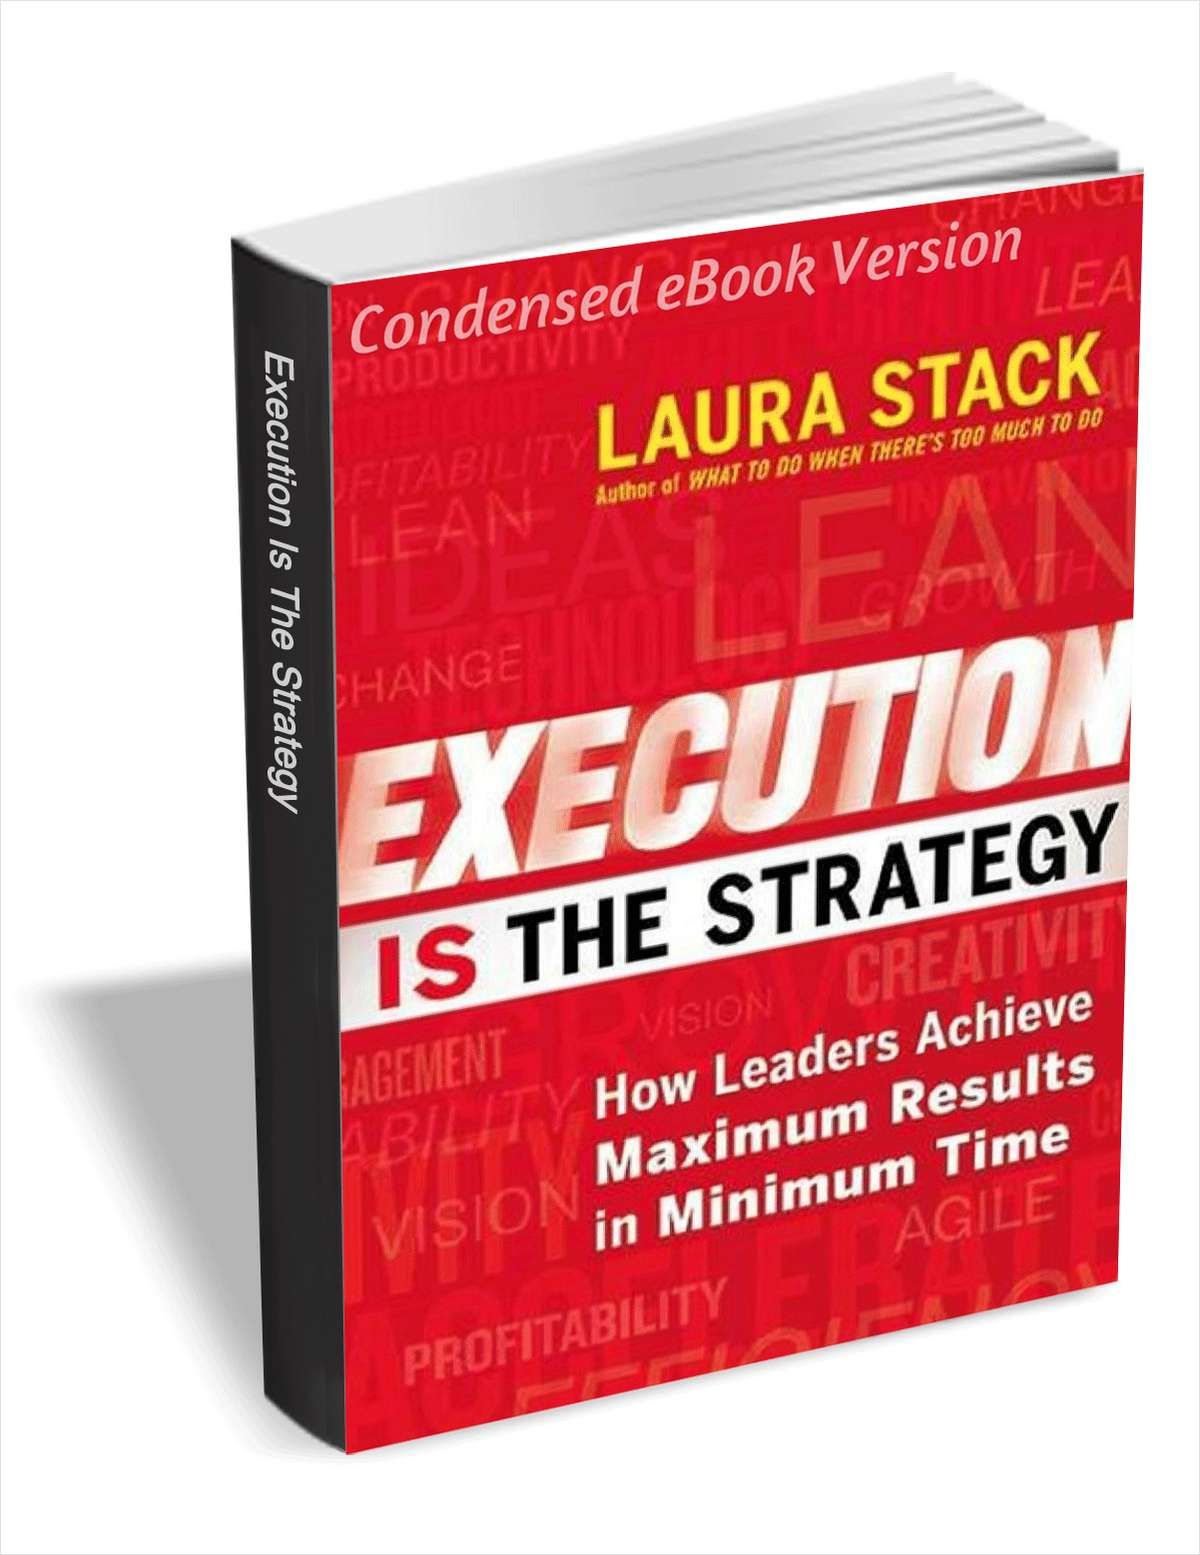 Execution IS the Strategy - How Leaders Achieve Maximum Results in Minimum Time (Condensed eBook Version)